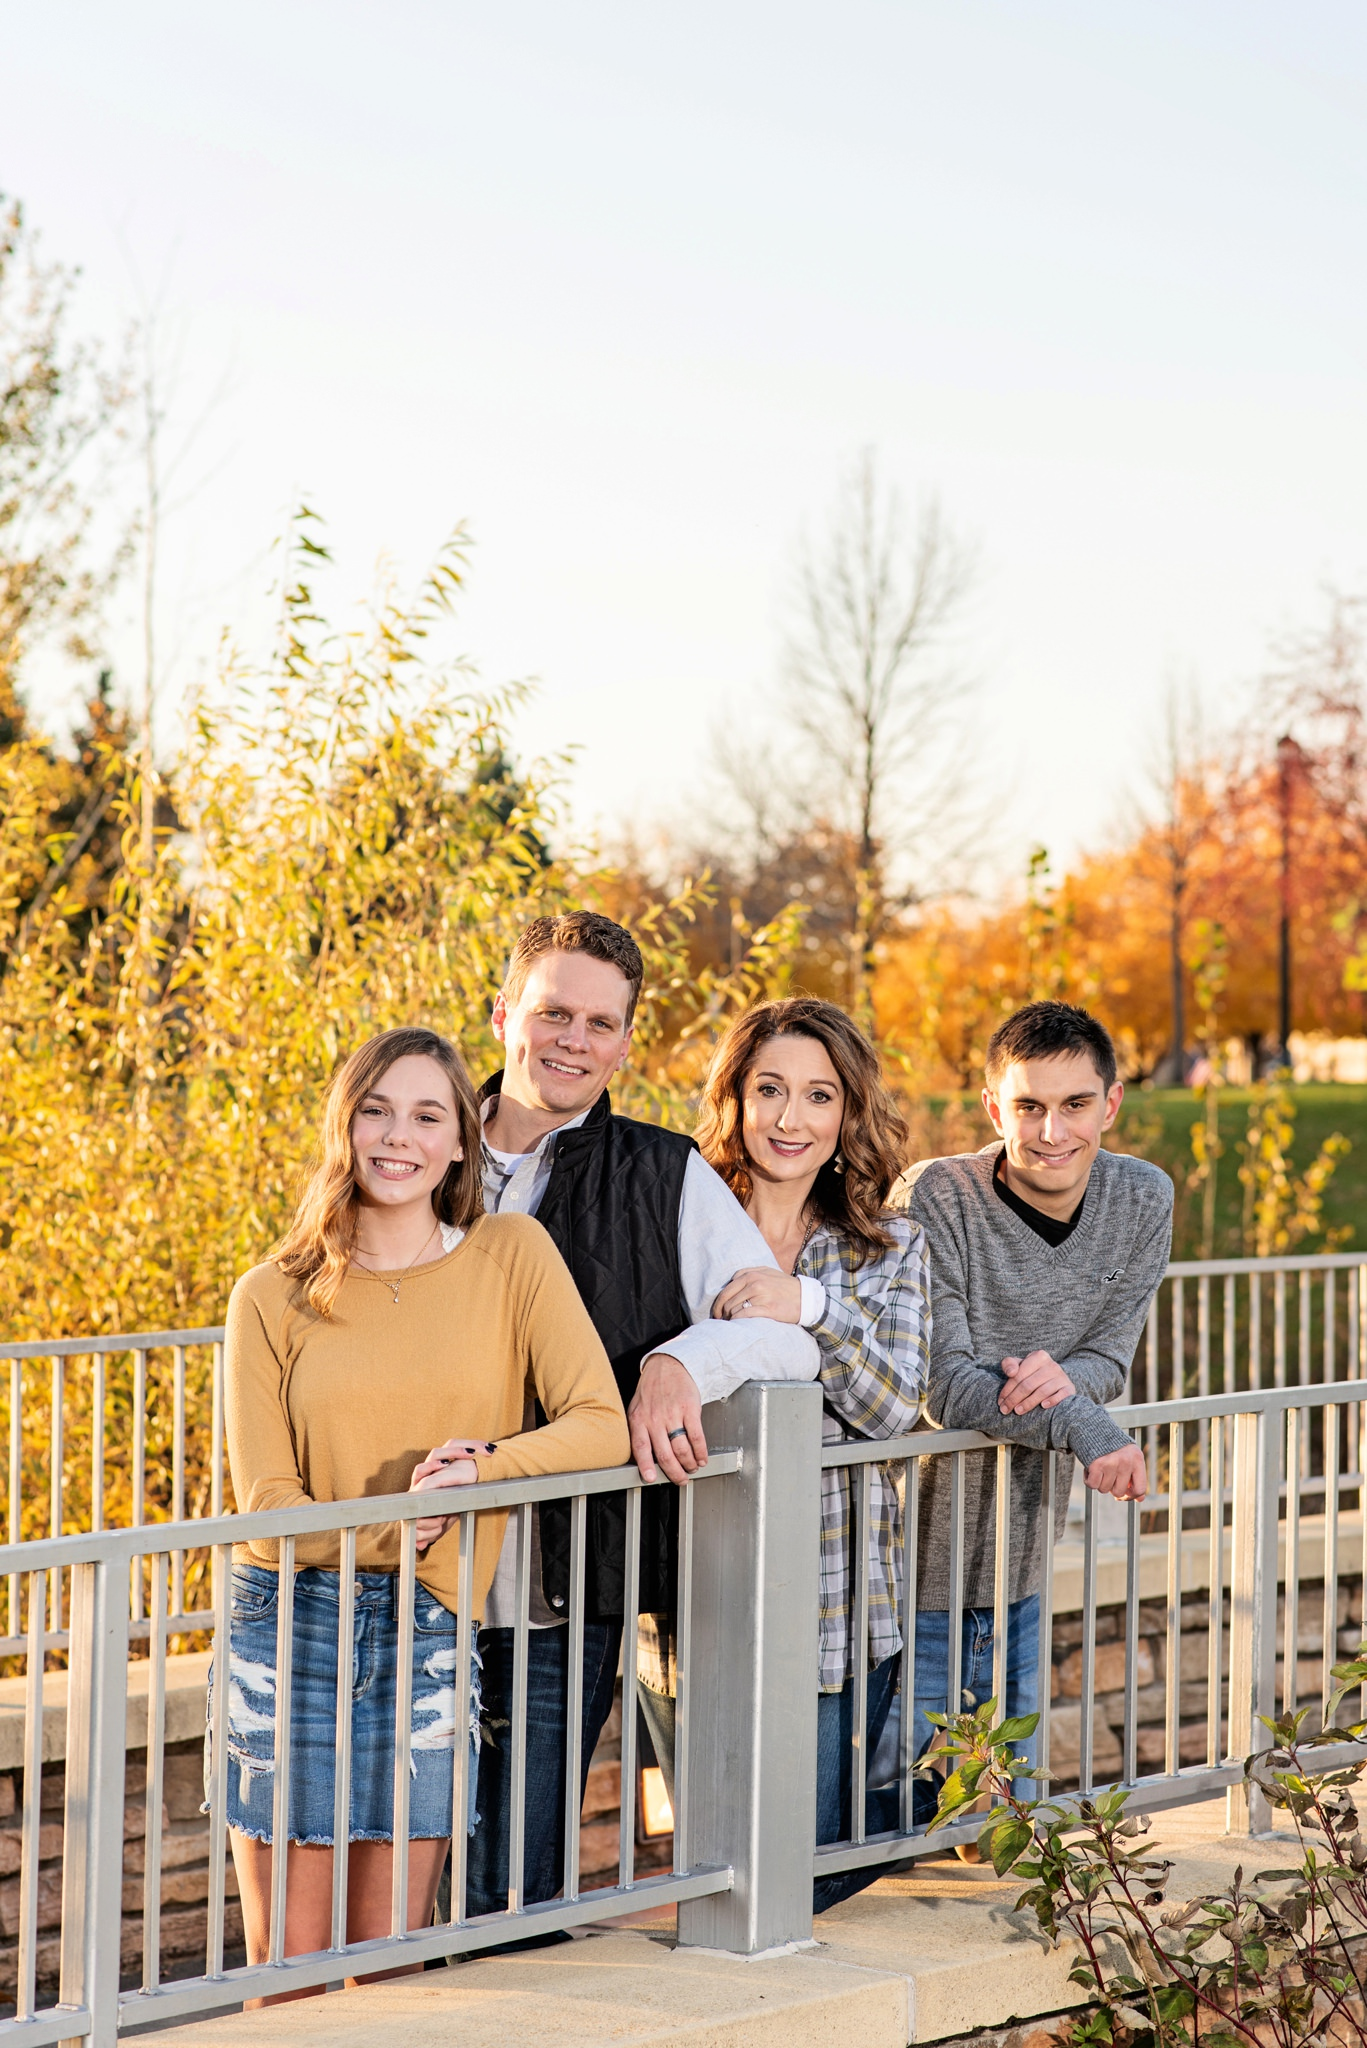 Wittwer-Family-Rotella-Photography-2018-33_WEB.jpg